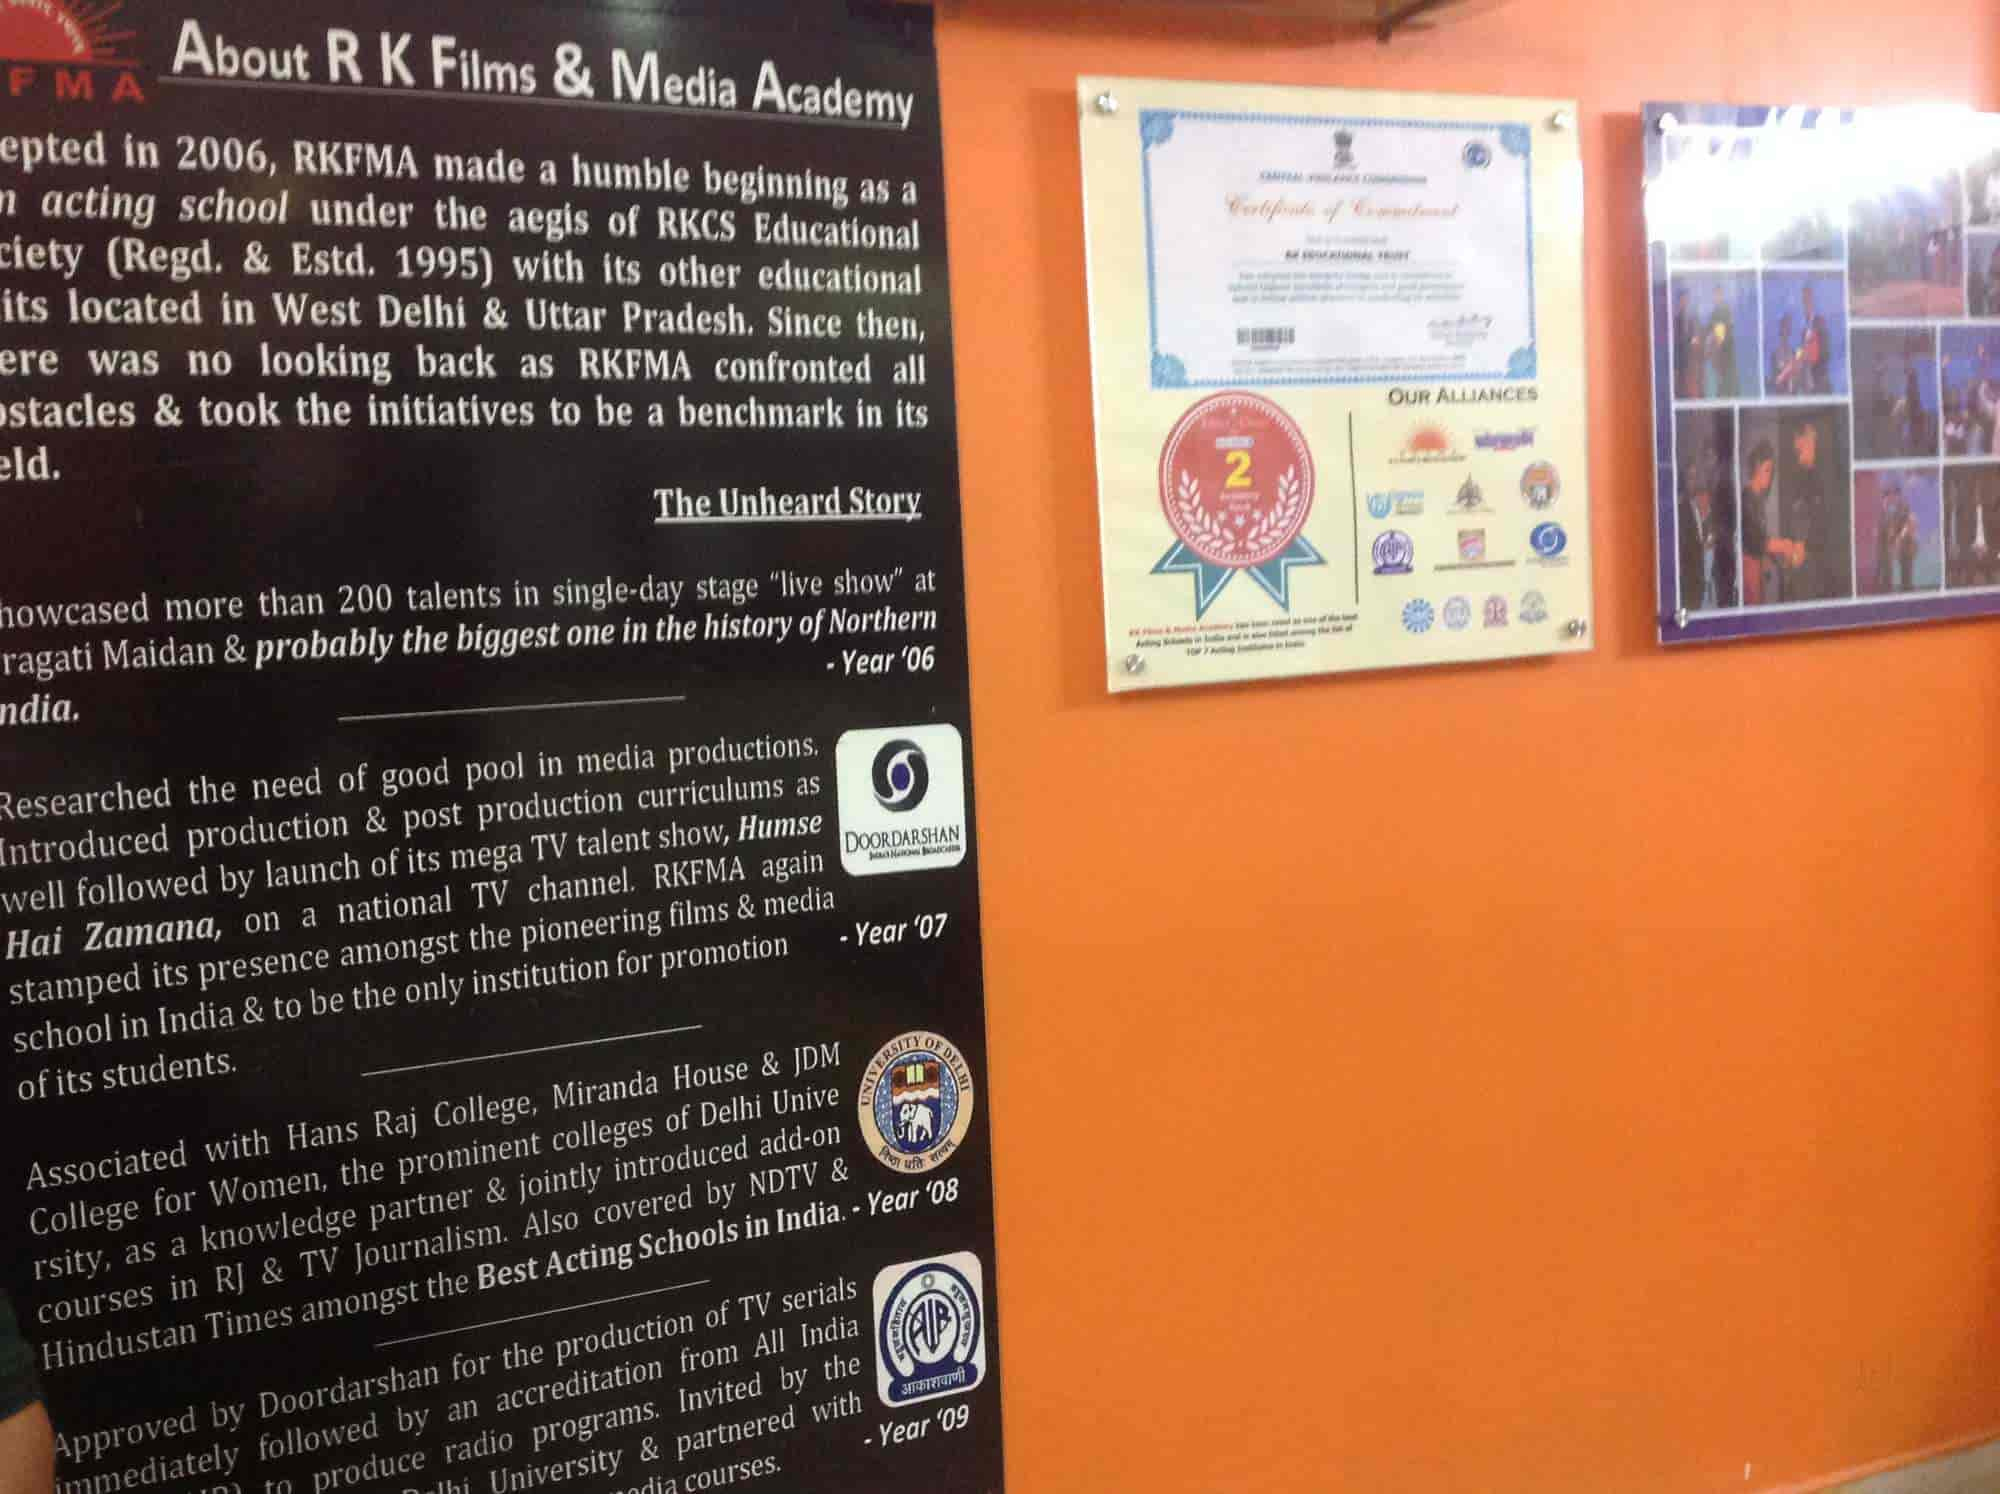 Rkfma School Of Mass Communication Media Studies Karol Bagh